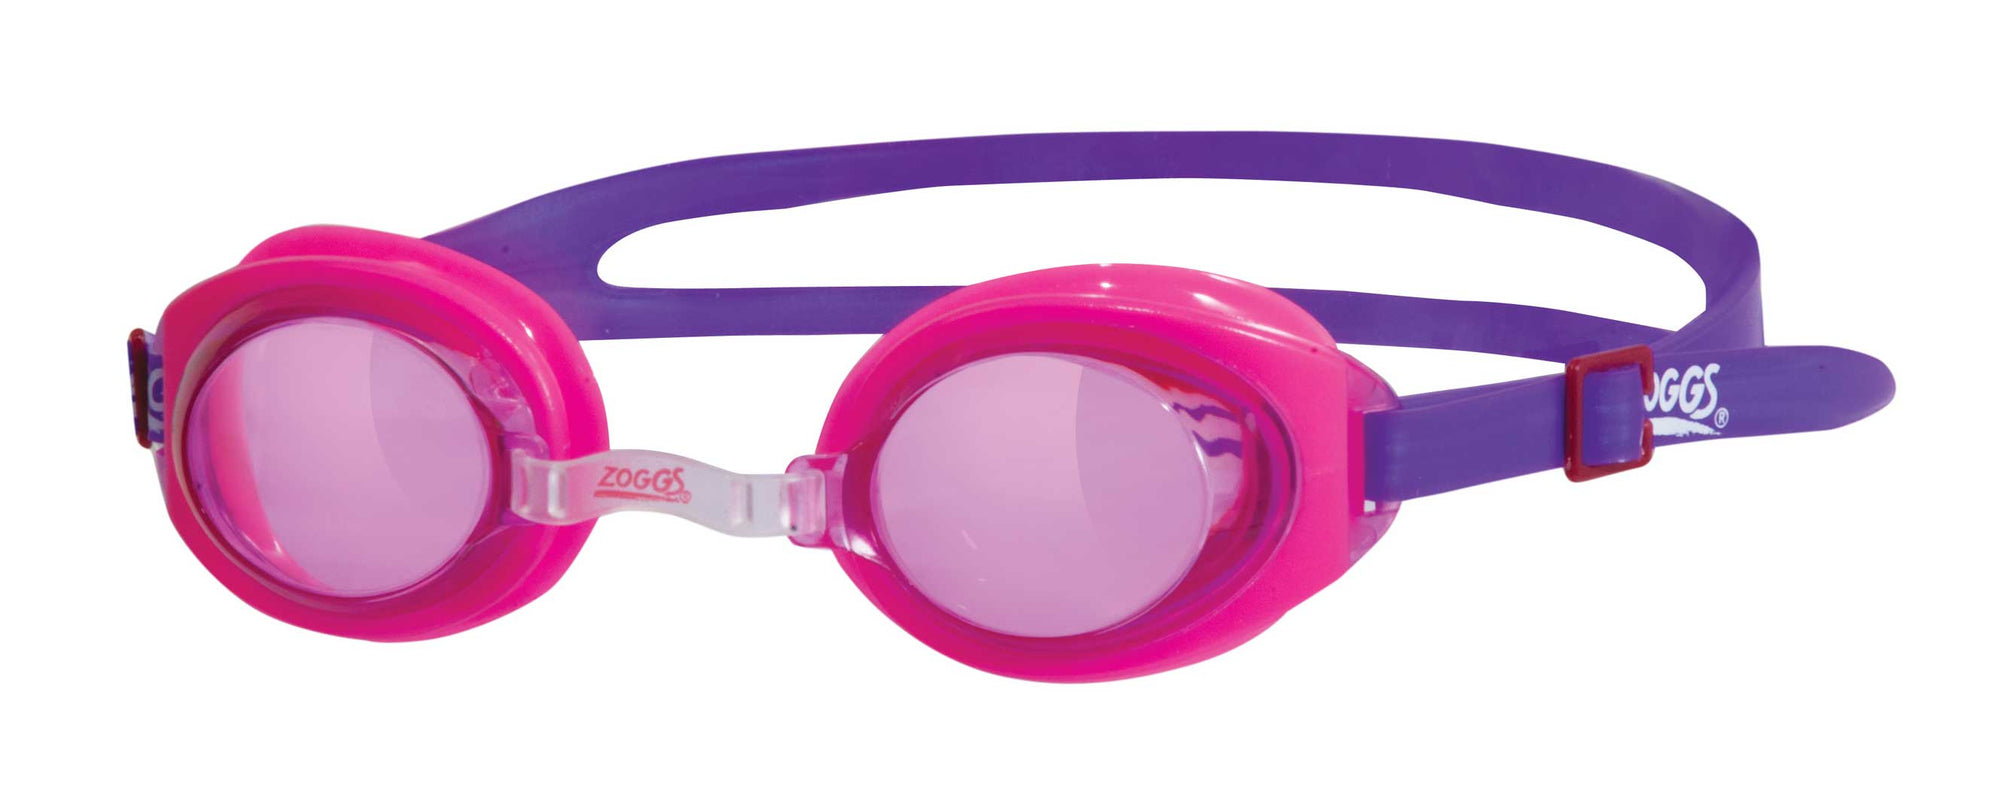 Zoggs Kids Goggles - Ripper Junior Pink